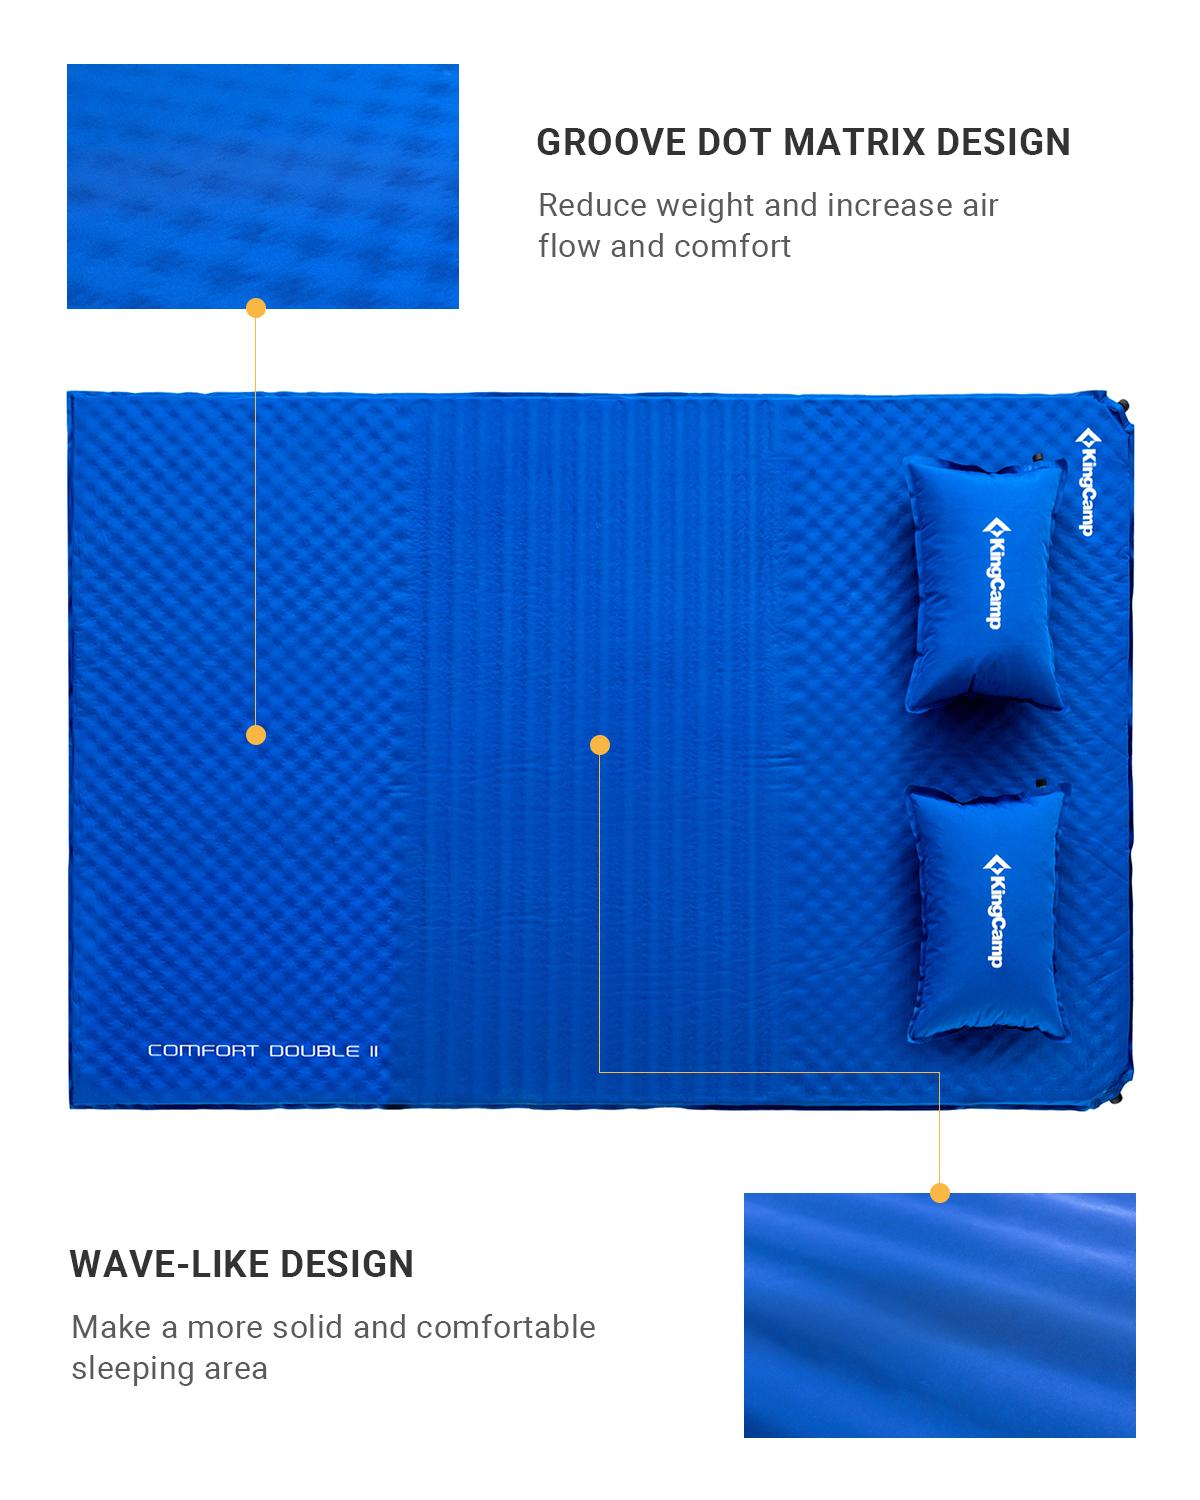 KingCamp Double Self Inflating Camping Bed Mattress Three Section Comfort Design with Pillow 198 x 130 x 4 cm